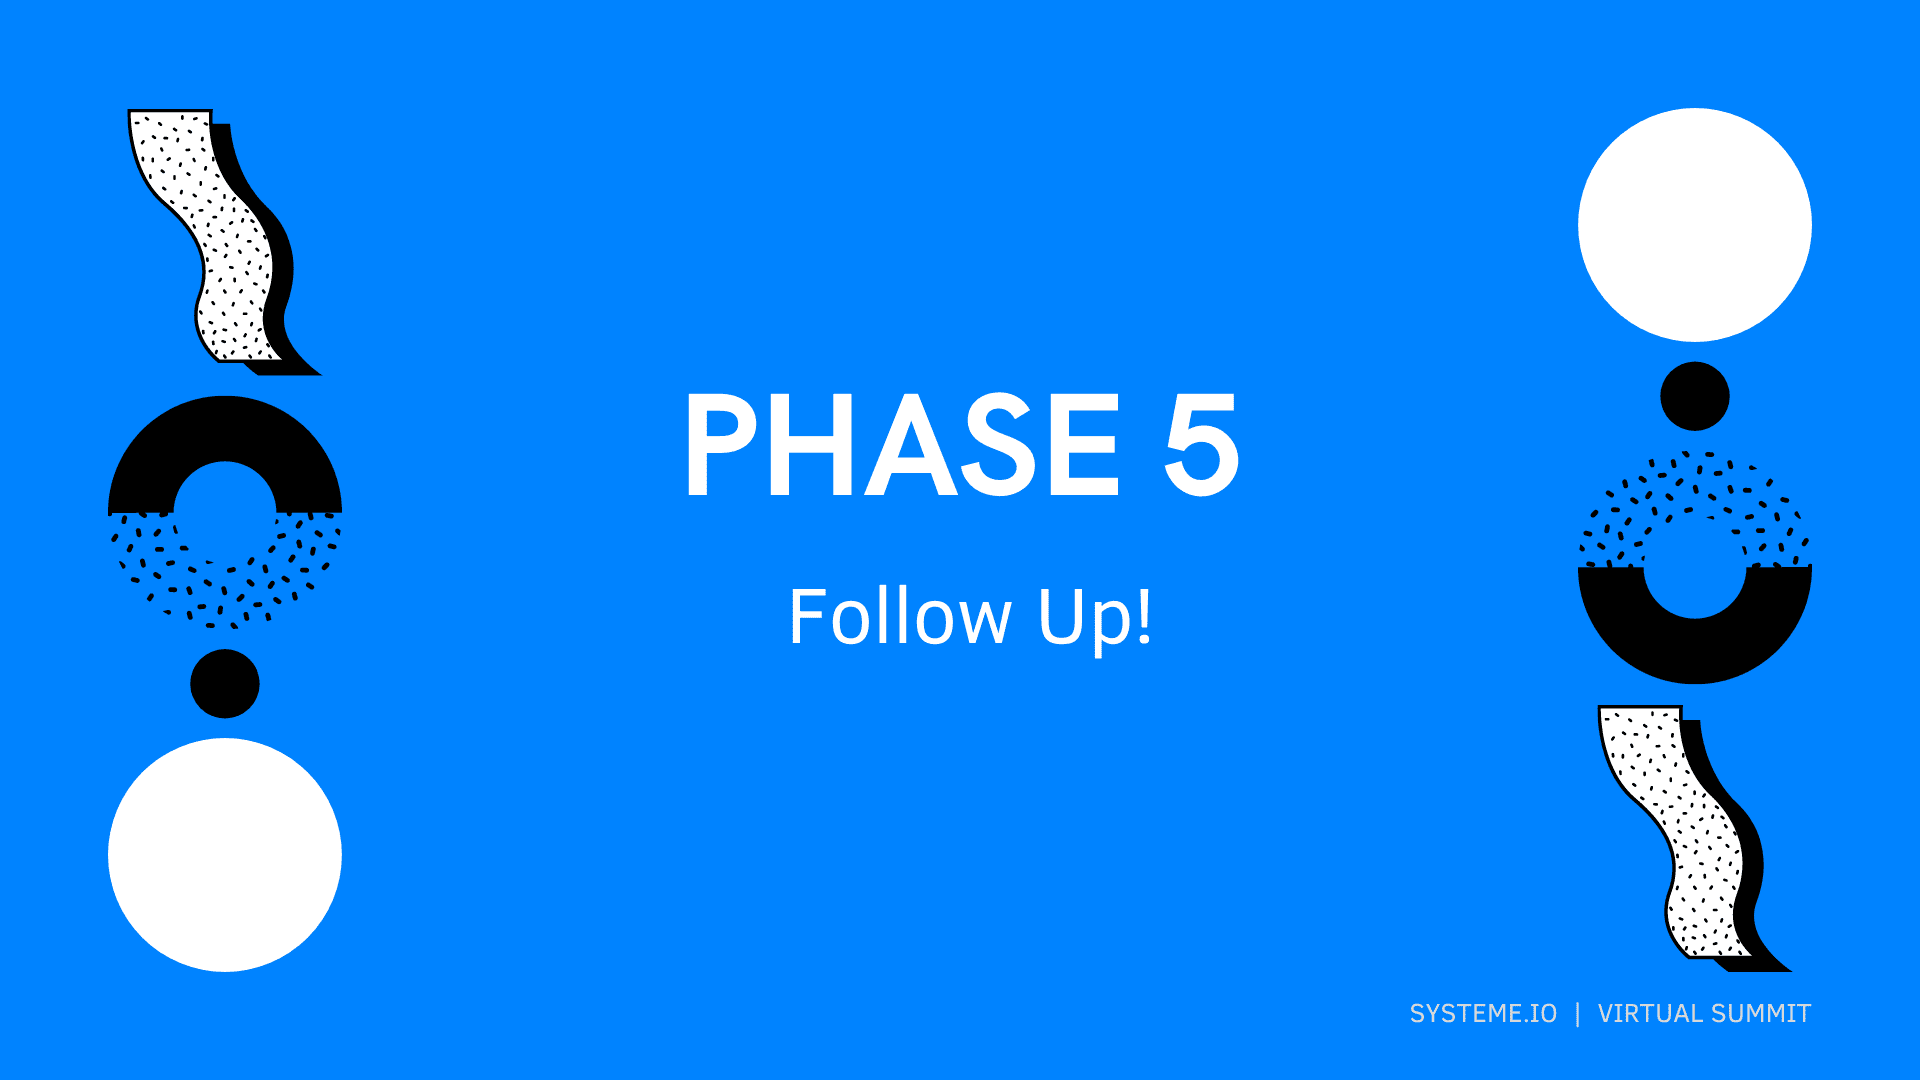 Phase 5 — Follow Up!